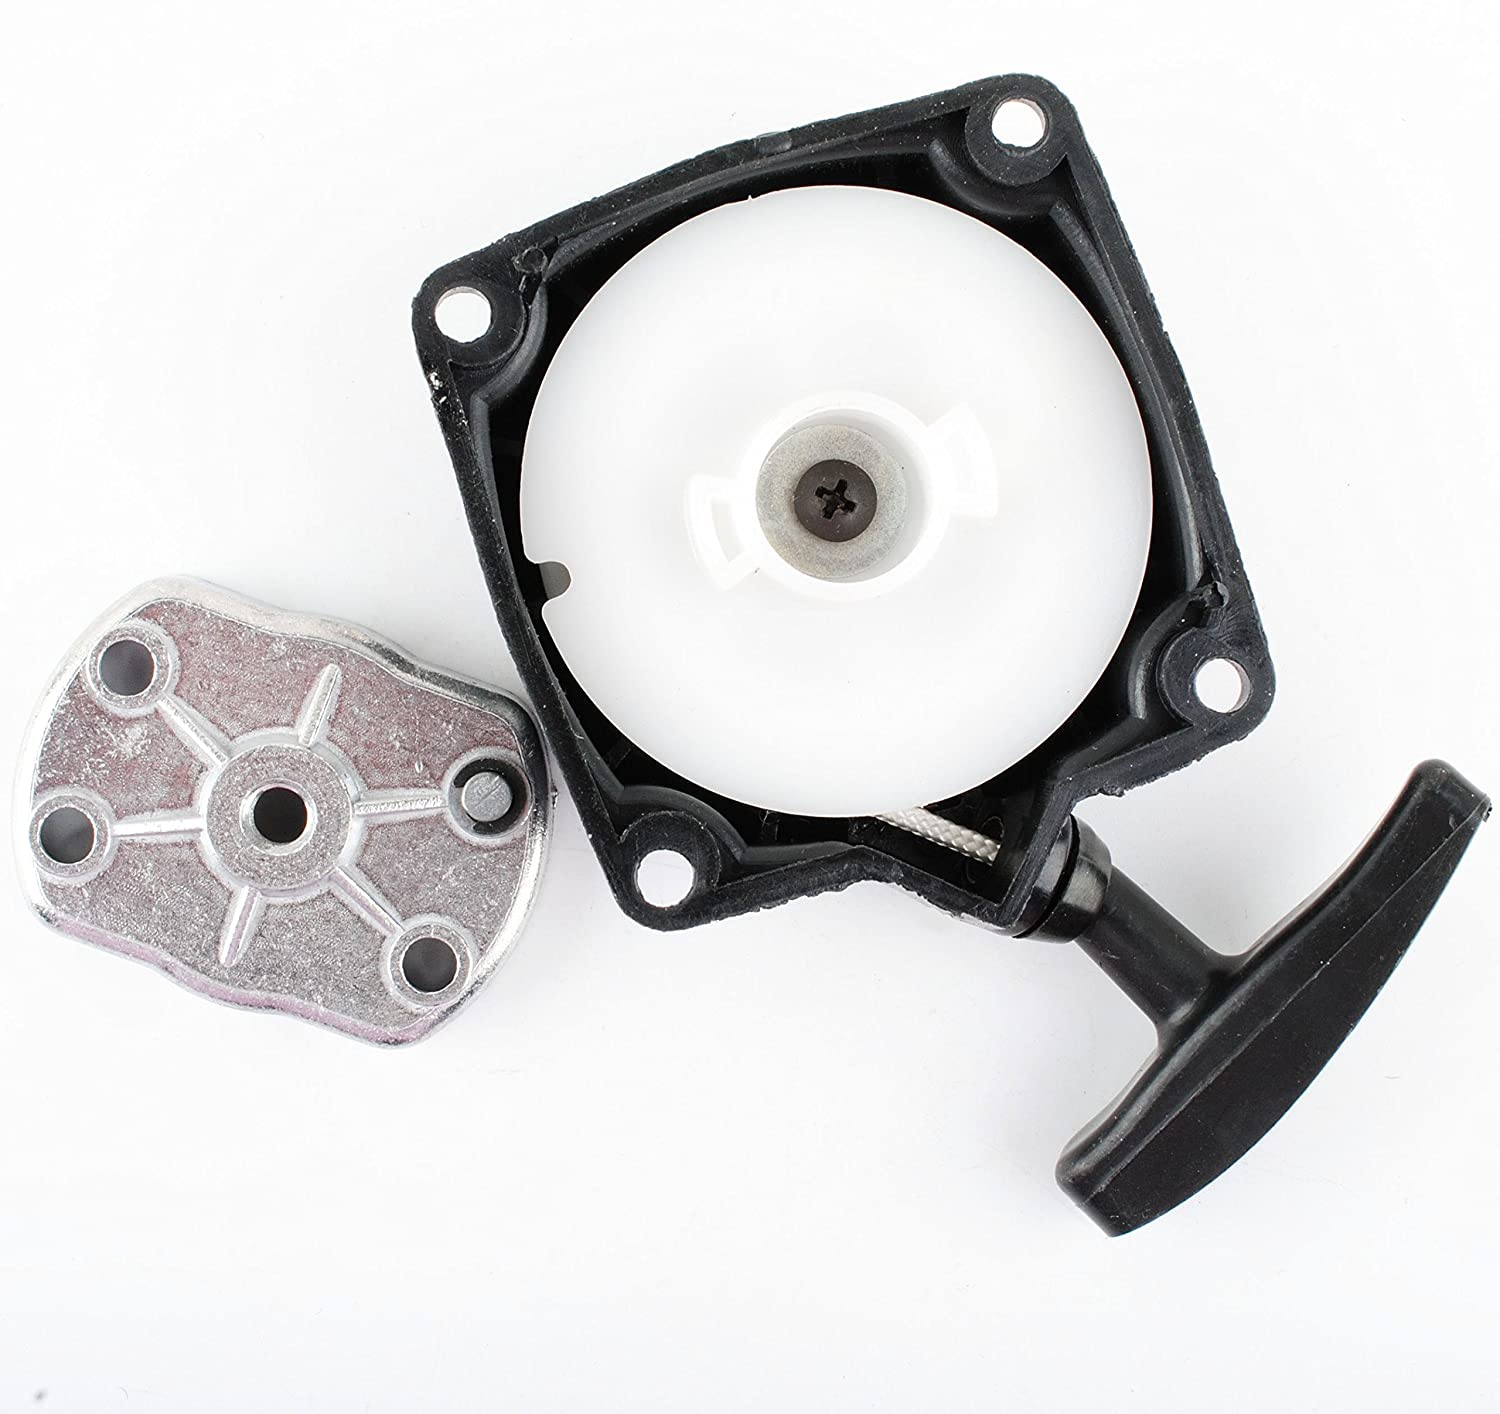 PULL START COG for Chinese 33cc 43cc 47cc 49cc PULLER with STARTER CLAW 50cc POCKET DIRT BIKE SCOOTER CHOPPER ATV PAWL